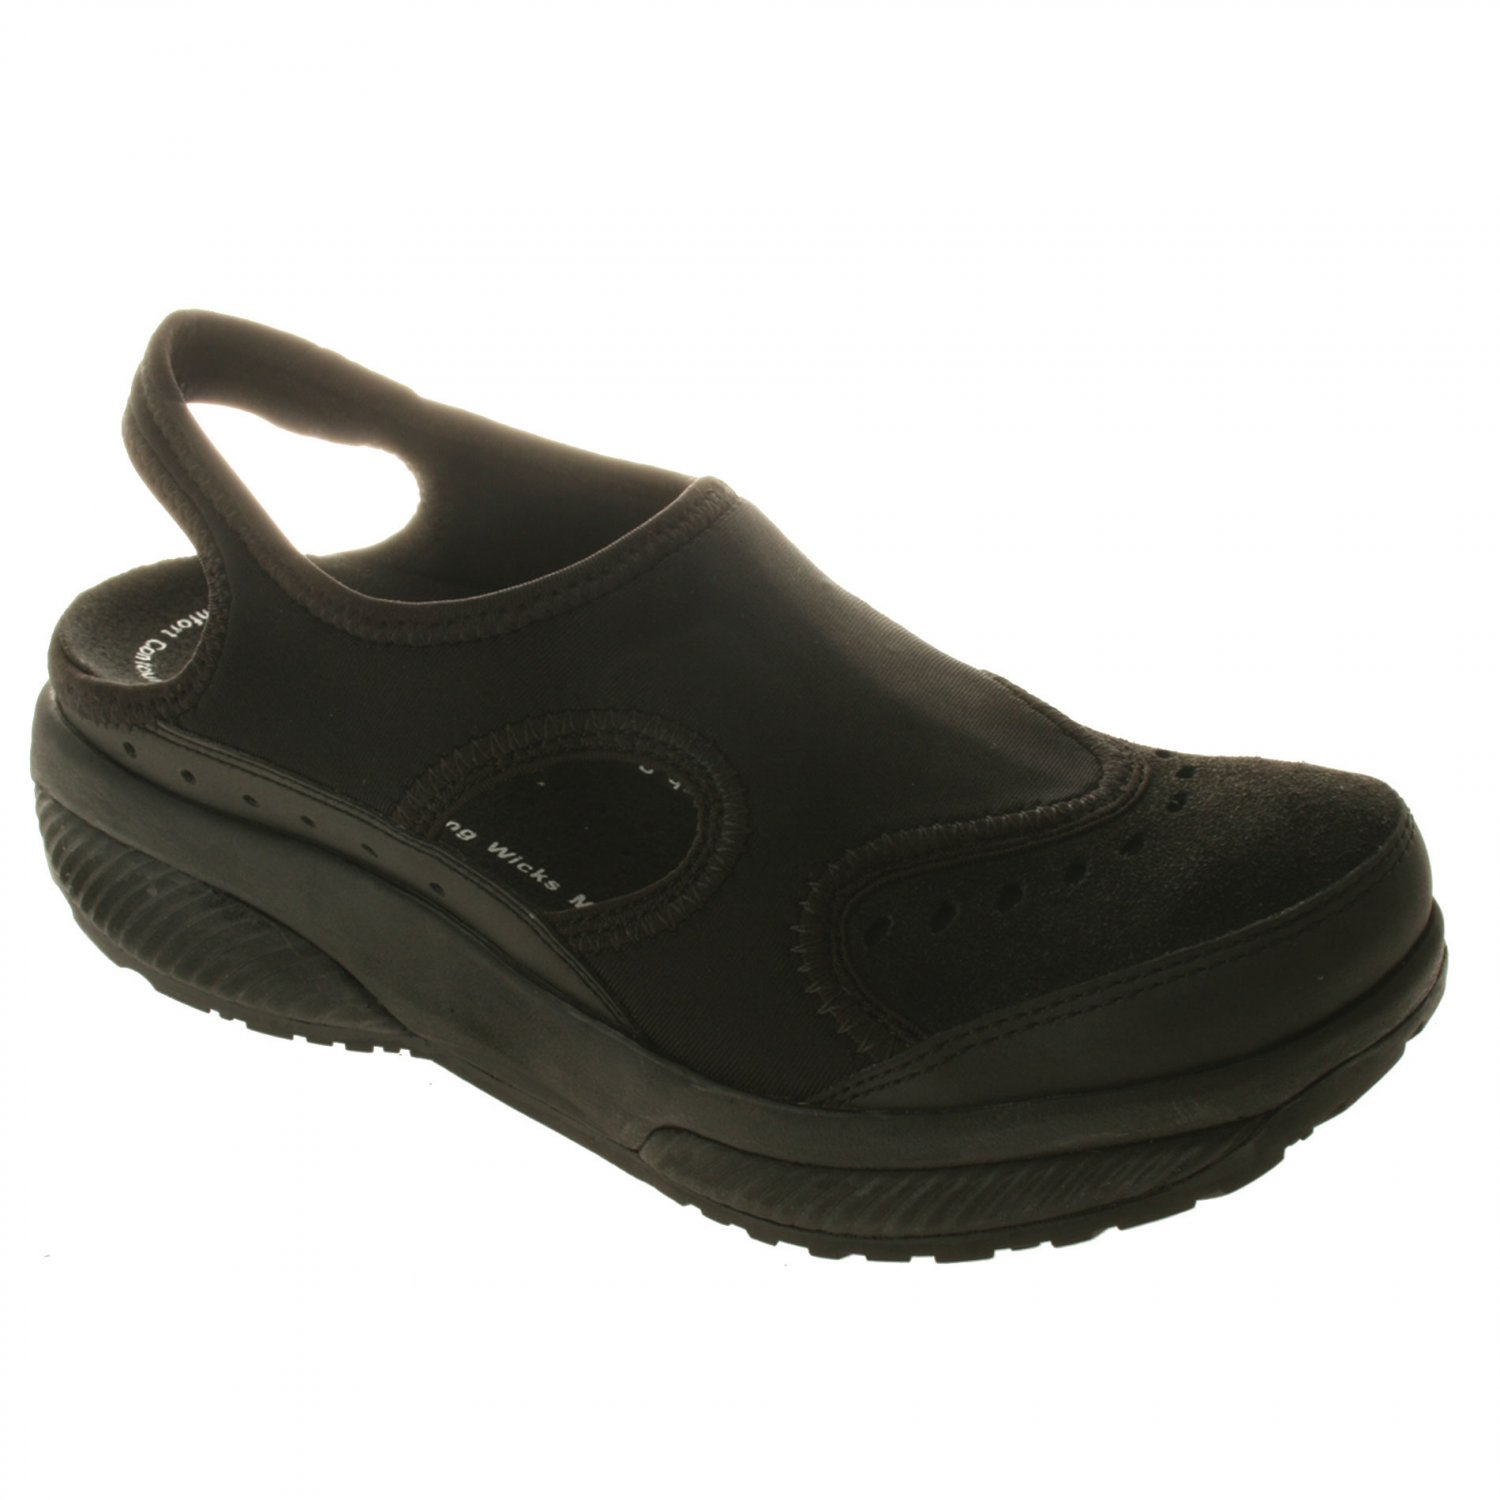 Spring Step ACTION Sandals Shoes All Sizes & Colors $8